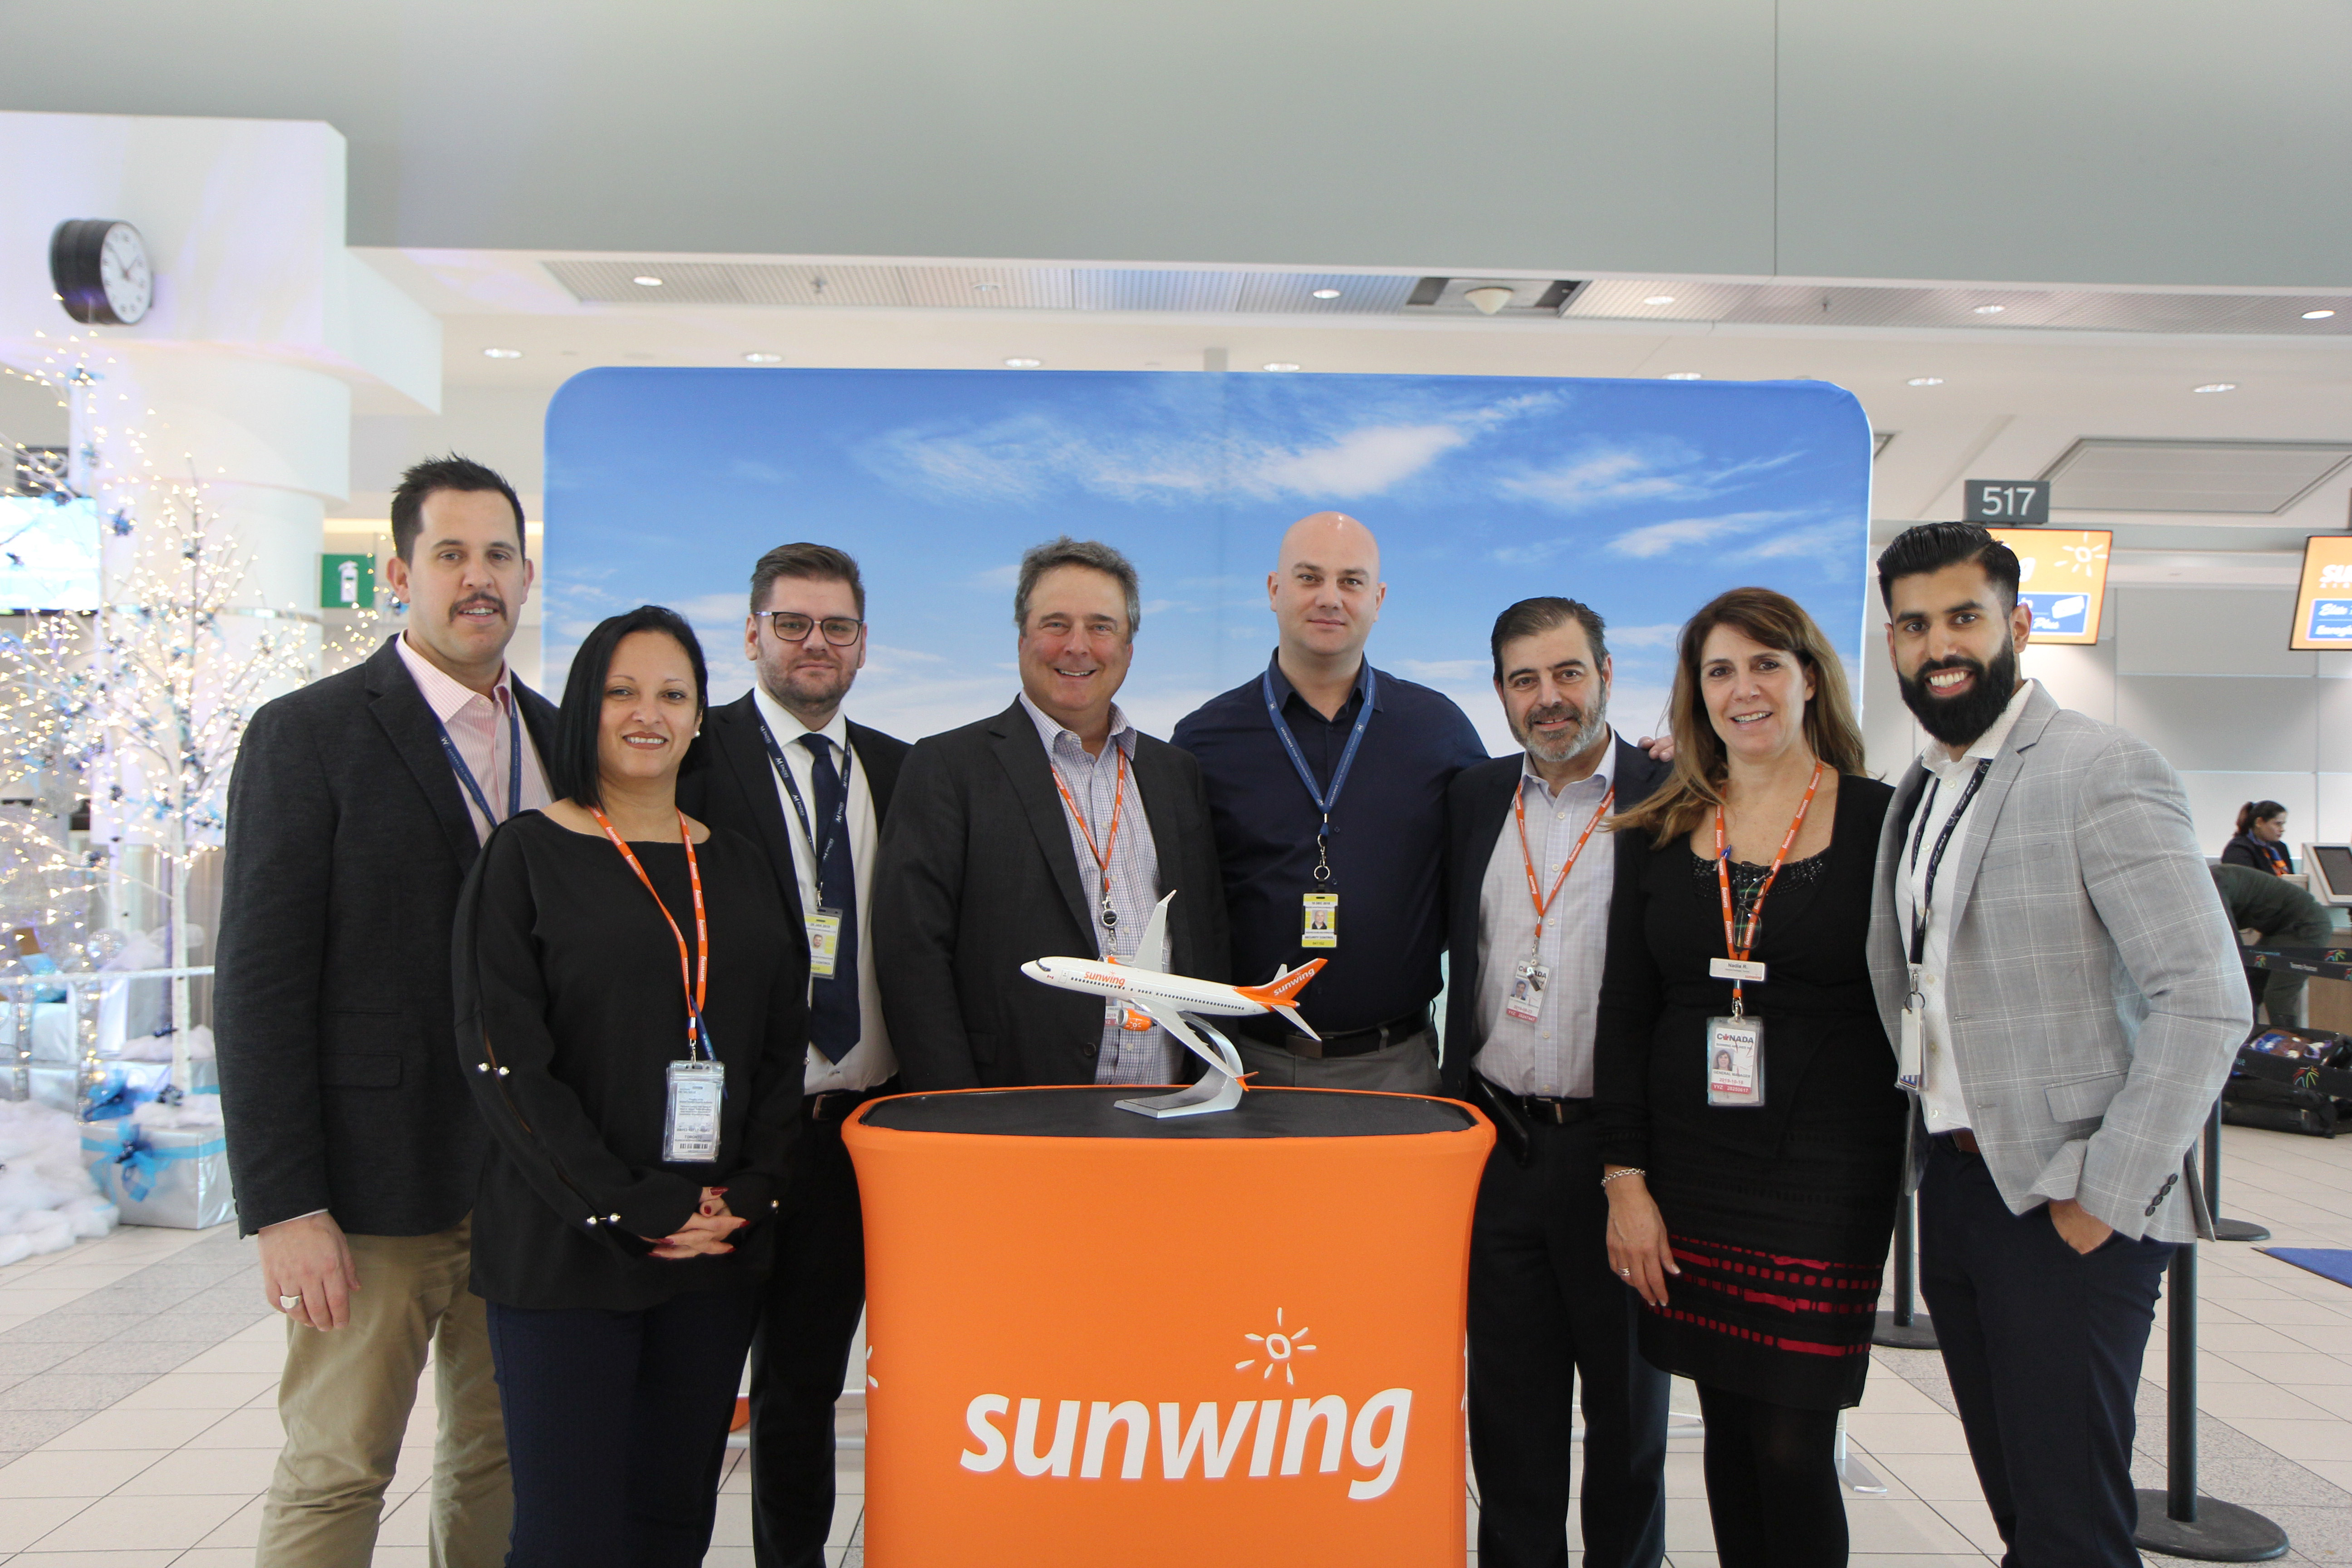 Sunwing and Menzies